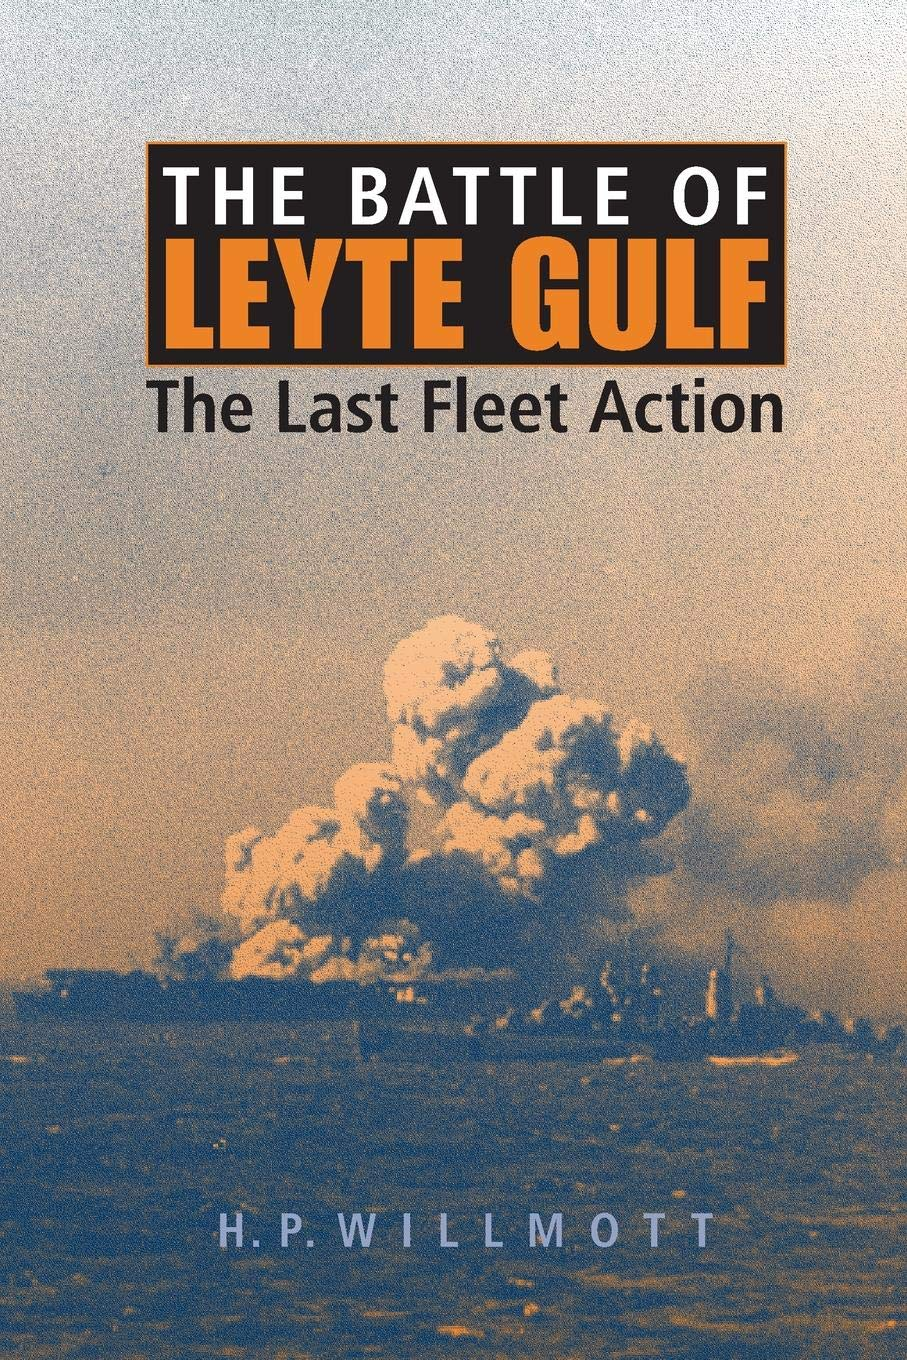 Image result for the battle of leyte gulf the last fleet action